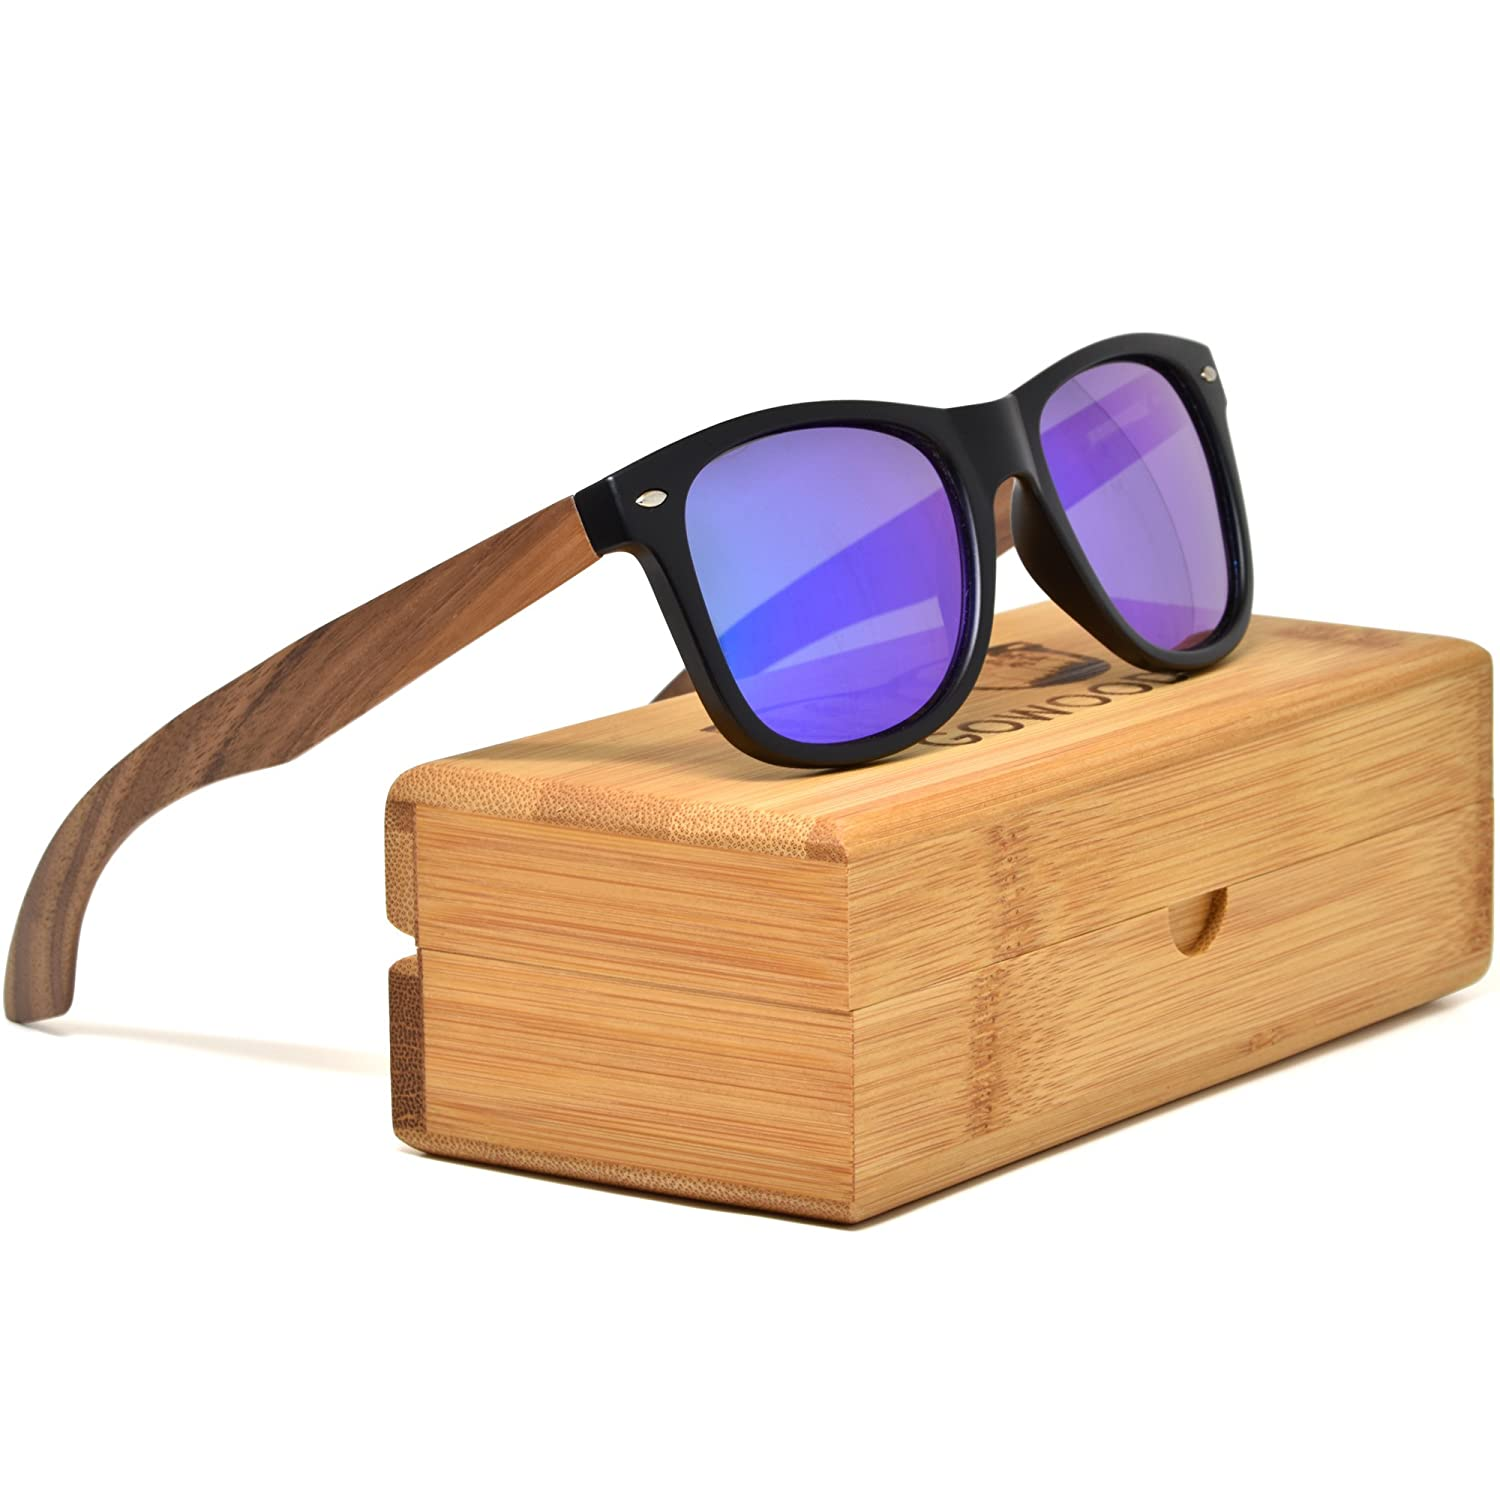 4069363d5d Amazon.com  Walnut Wood Sunglasses For Men   Women with Blue Mirrored  Polarized Lenses  Clothing